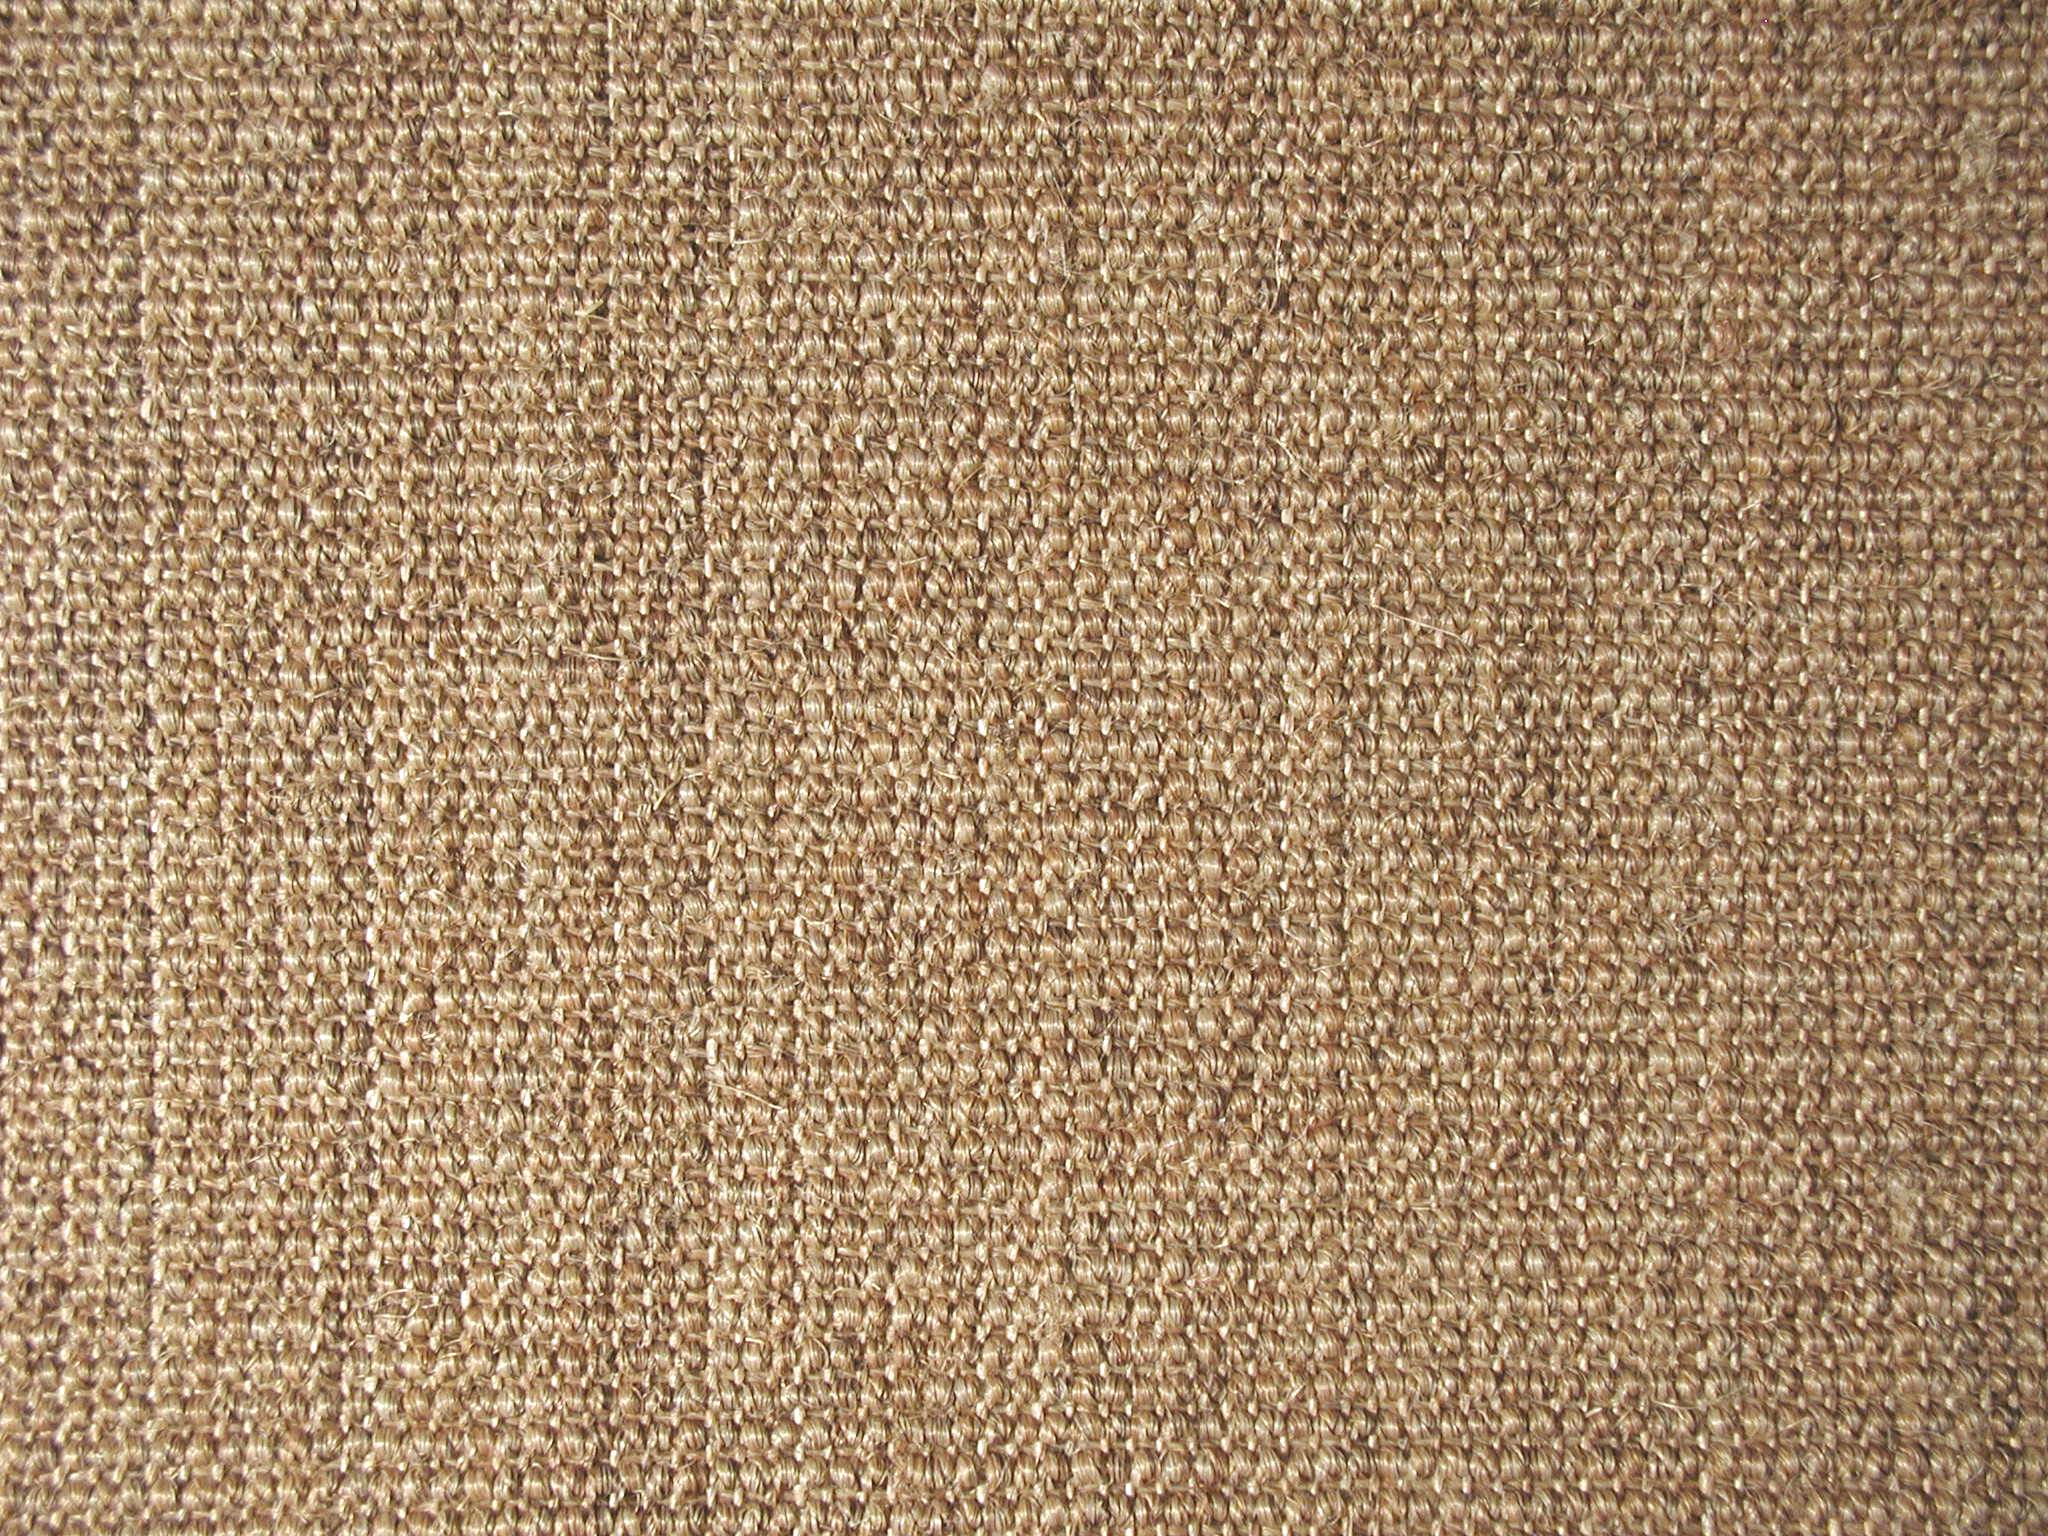 wallpaper rug seagrass rugs